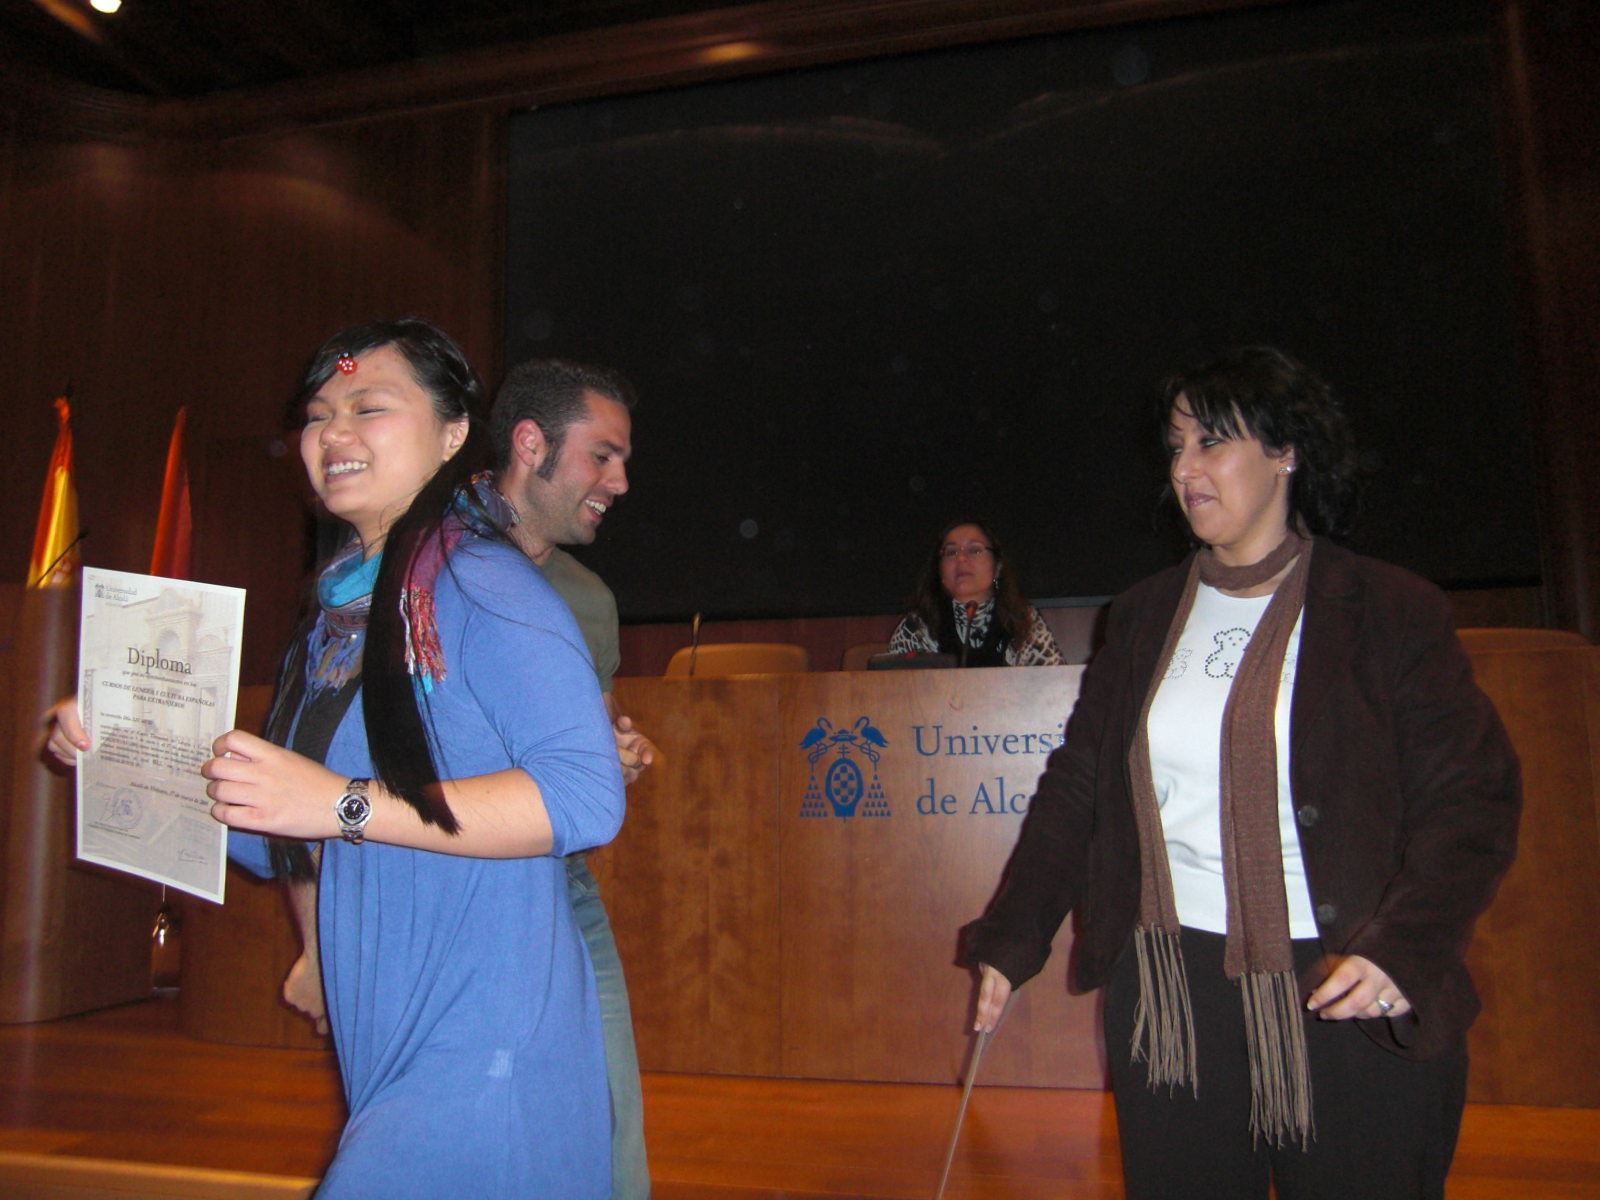 Closing ceremony (winter 2009)